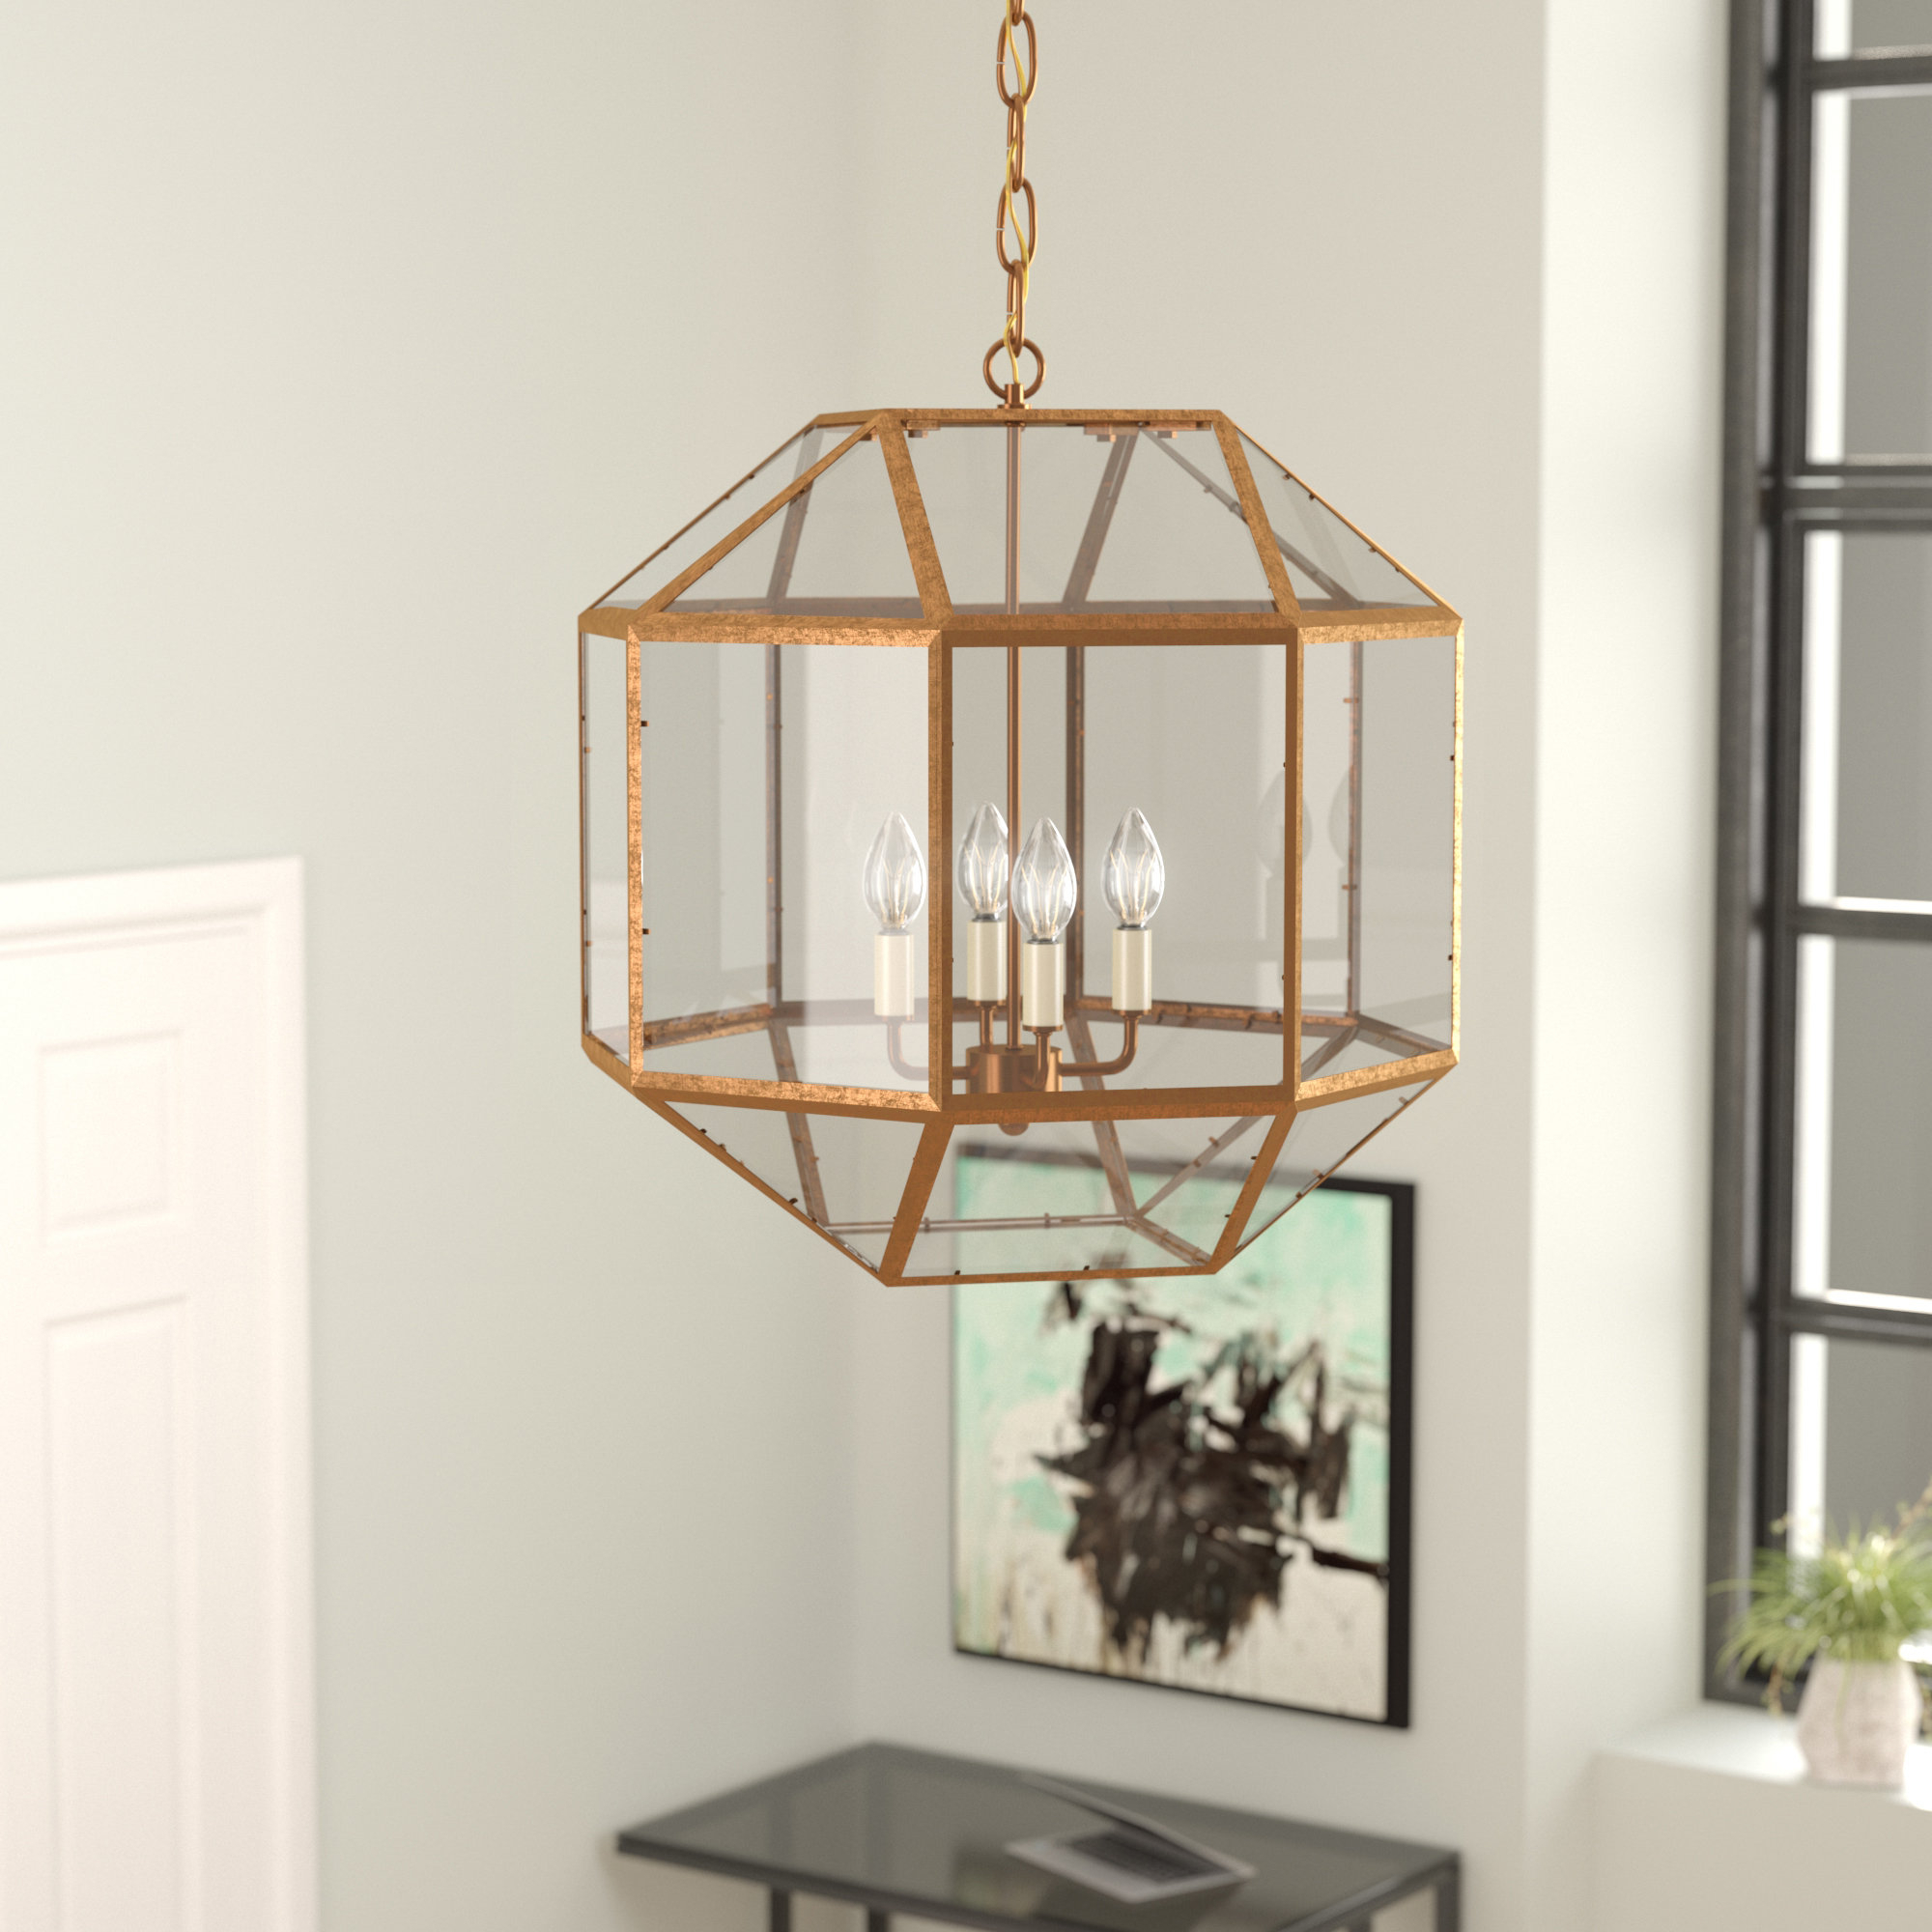 [%Geometric Chandeliers Sale – Up To 65% Off Until September Within Popular Cavanagh 4 Light Geometric Chandeliers|Cavanagh 4 Light Geometric Chandeliers With Regard To Newest Geometric Chandeliers Sale – Up To 65% Off Until September|Famous Cavanagh 4 Light Geometric Chandeliers For Geometric Chandeliers Sale – Up To 65% Off Until September|2020 Geometric Chandeliers Sale – Up To 65% Off Until September Inside Cavanagh 4 Light Geometric Chandeliers%] (View 14 of 25)